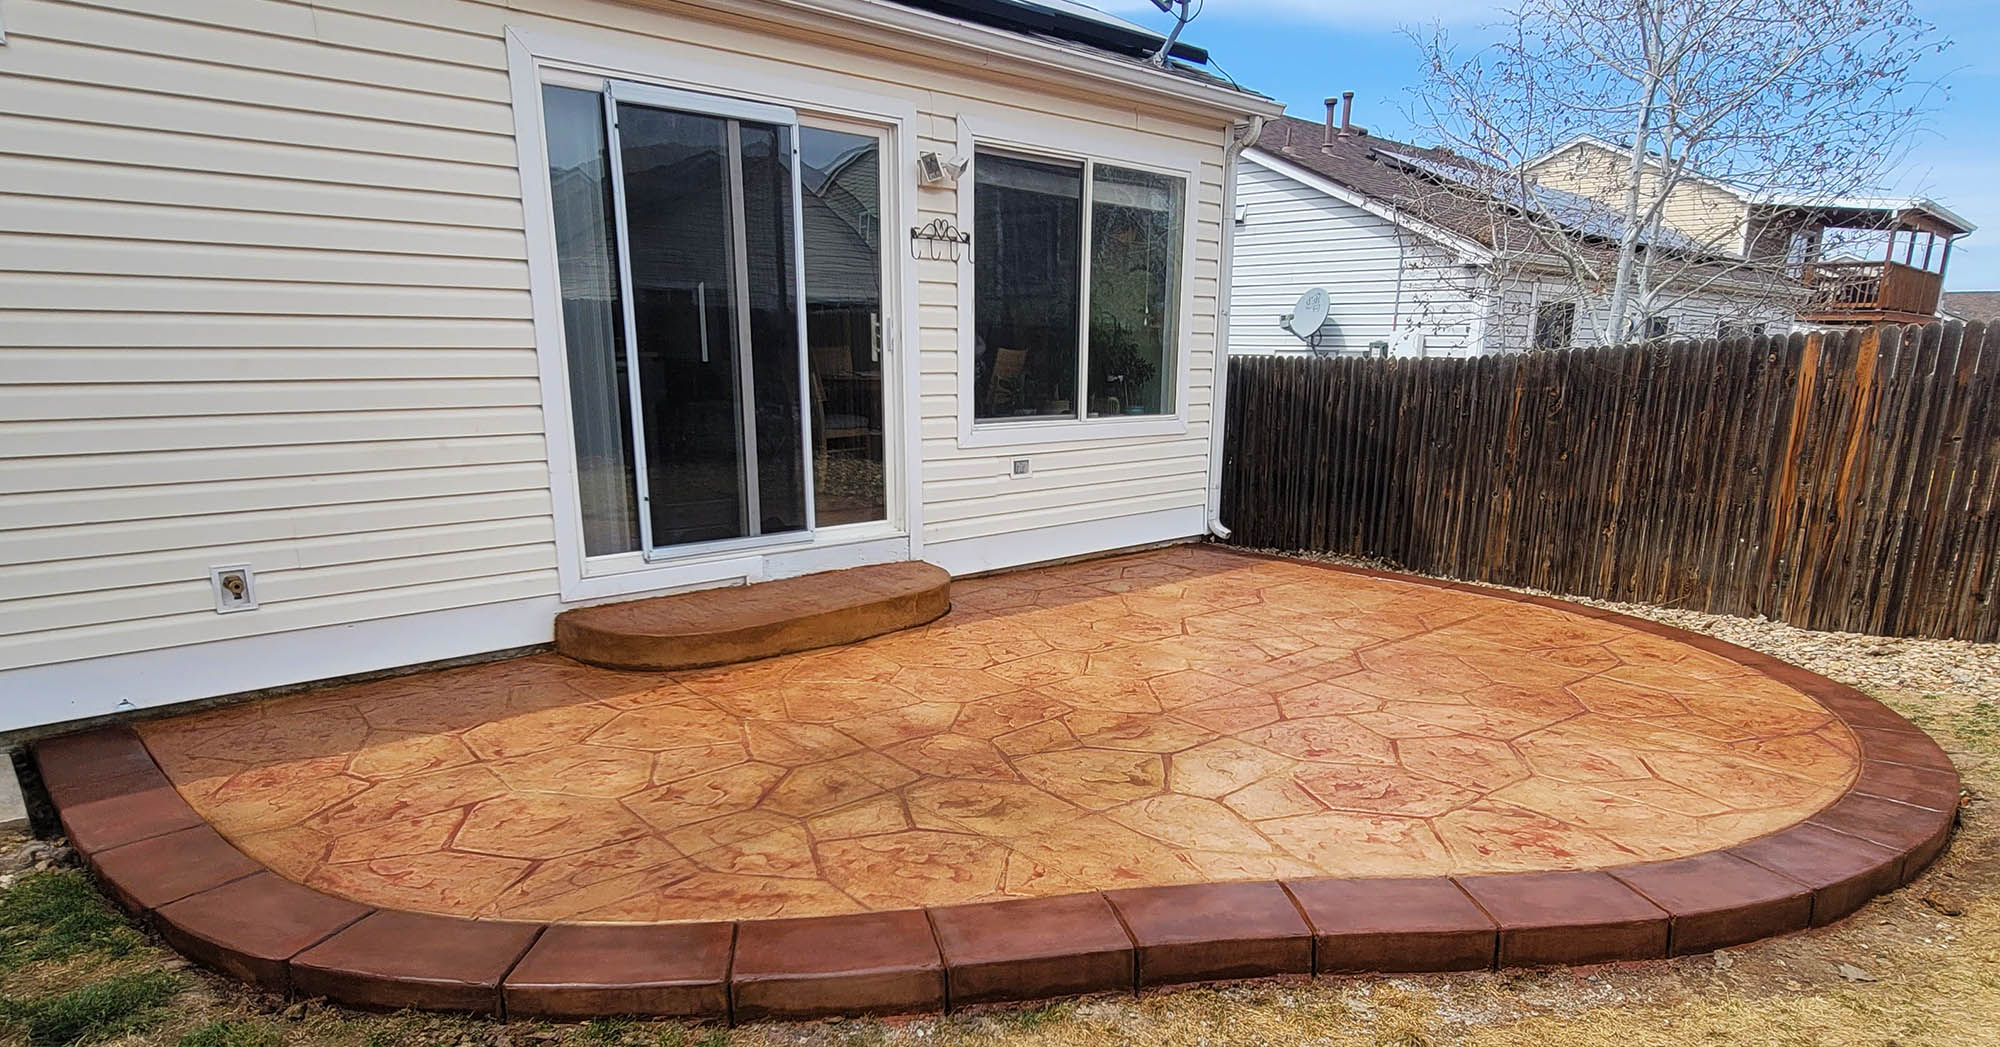 Stamped concrete patio after completion by Denver Concrete Inc